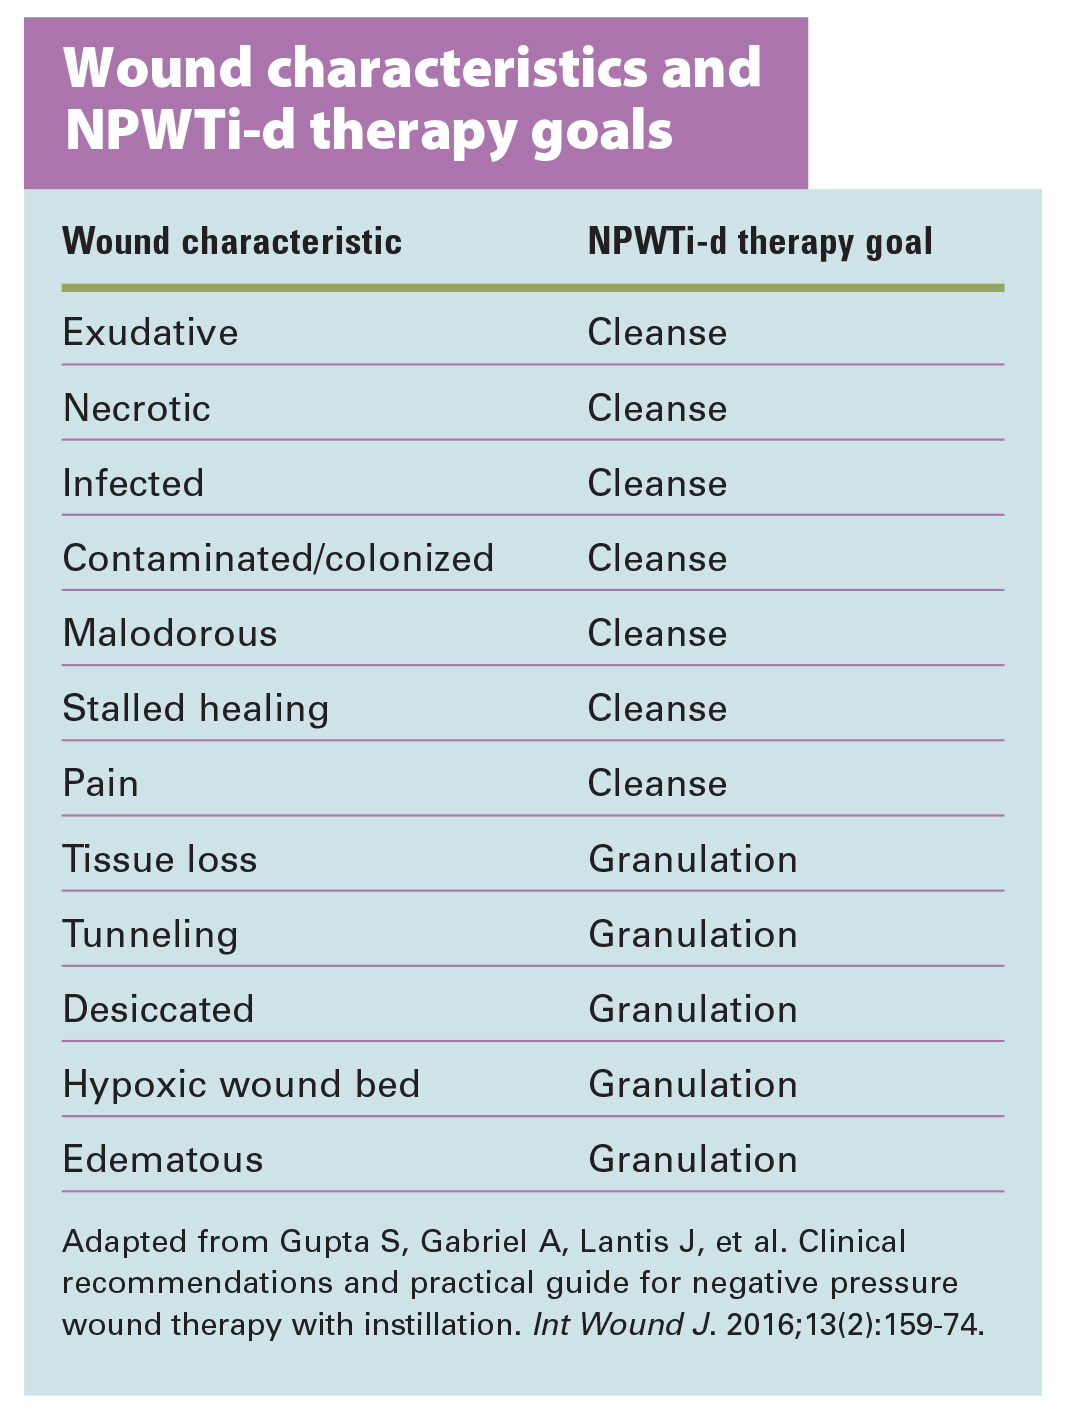 WOUND CARE A TOOL TO ASSIST HOME HEALTH NURSES IN WOUND ASSESSMENT essay for college